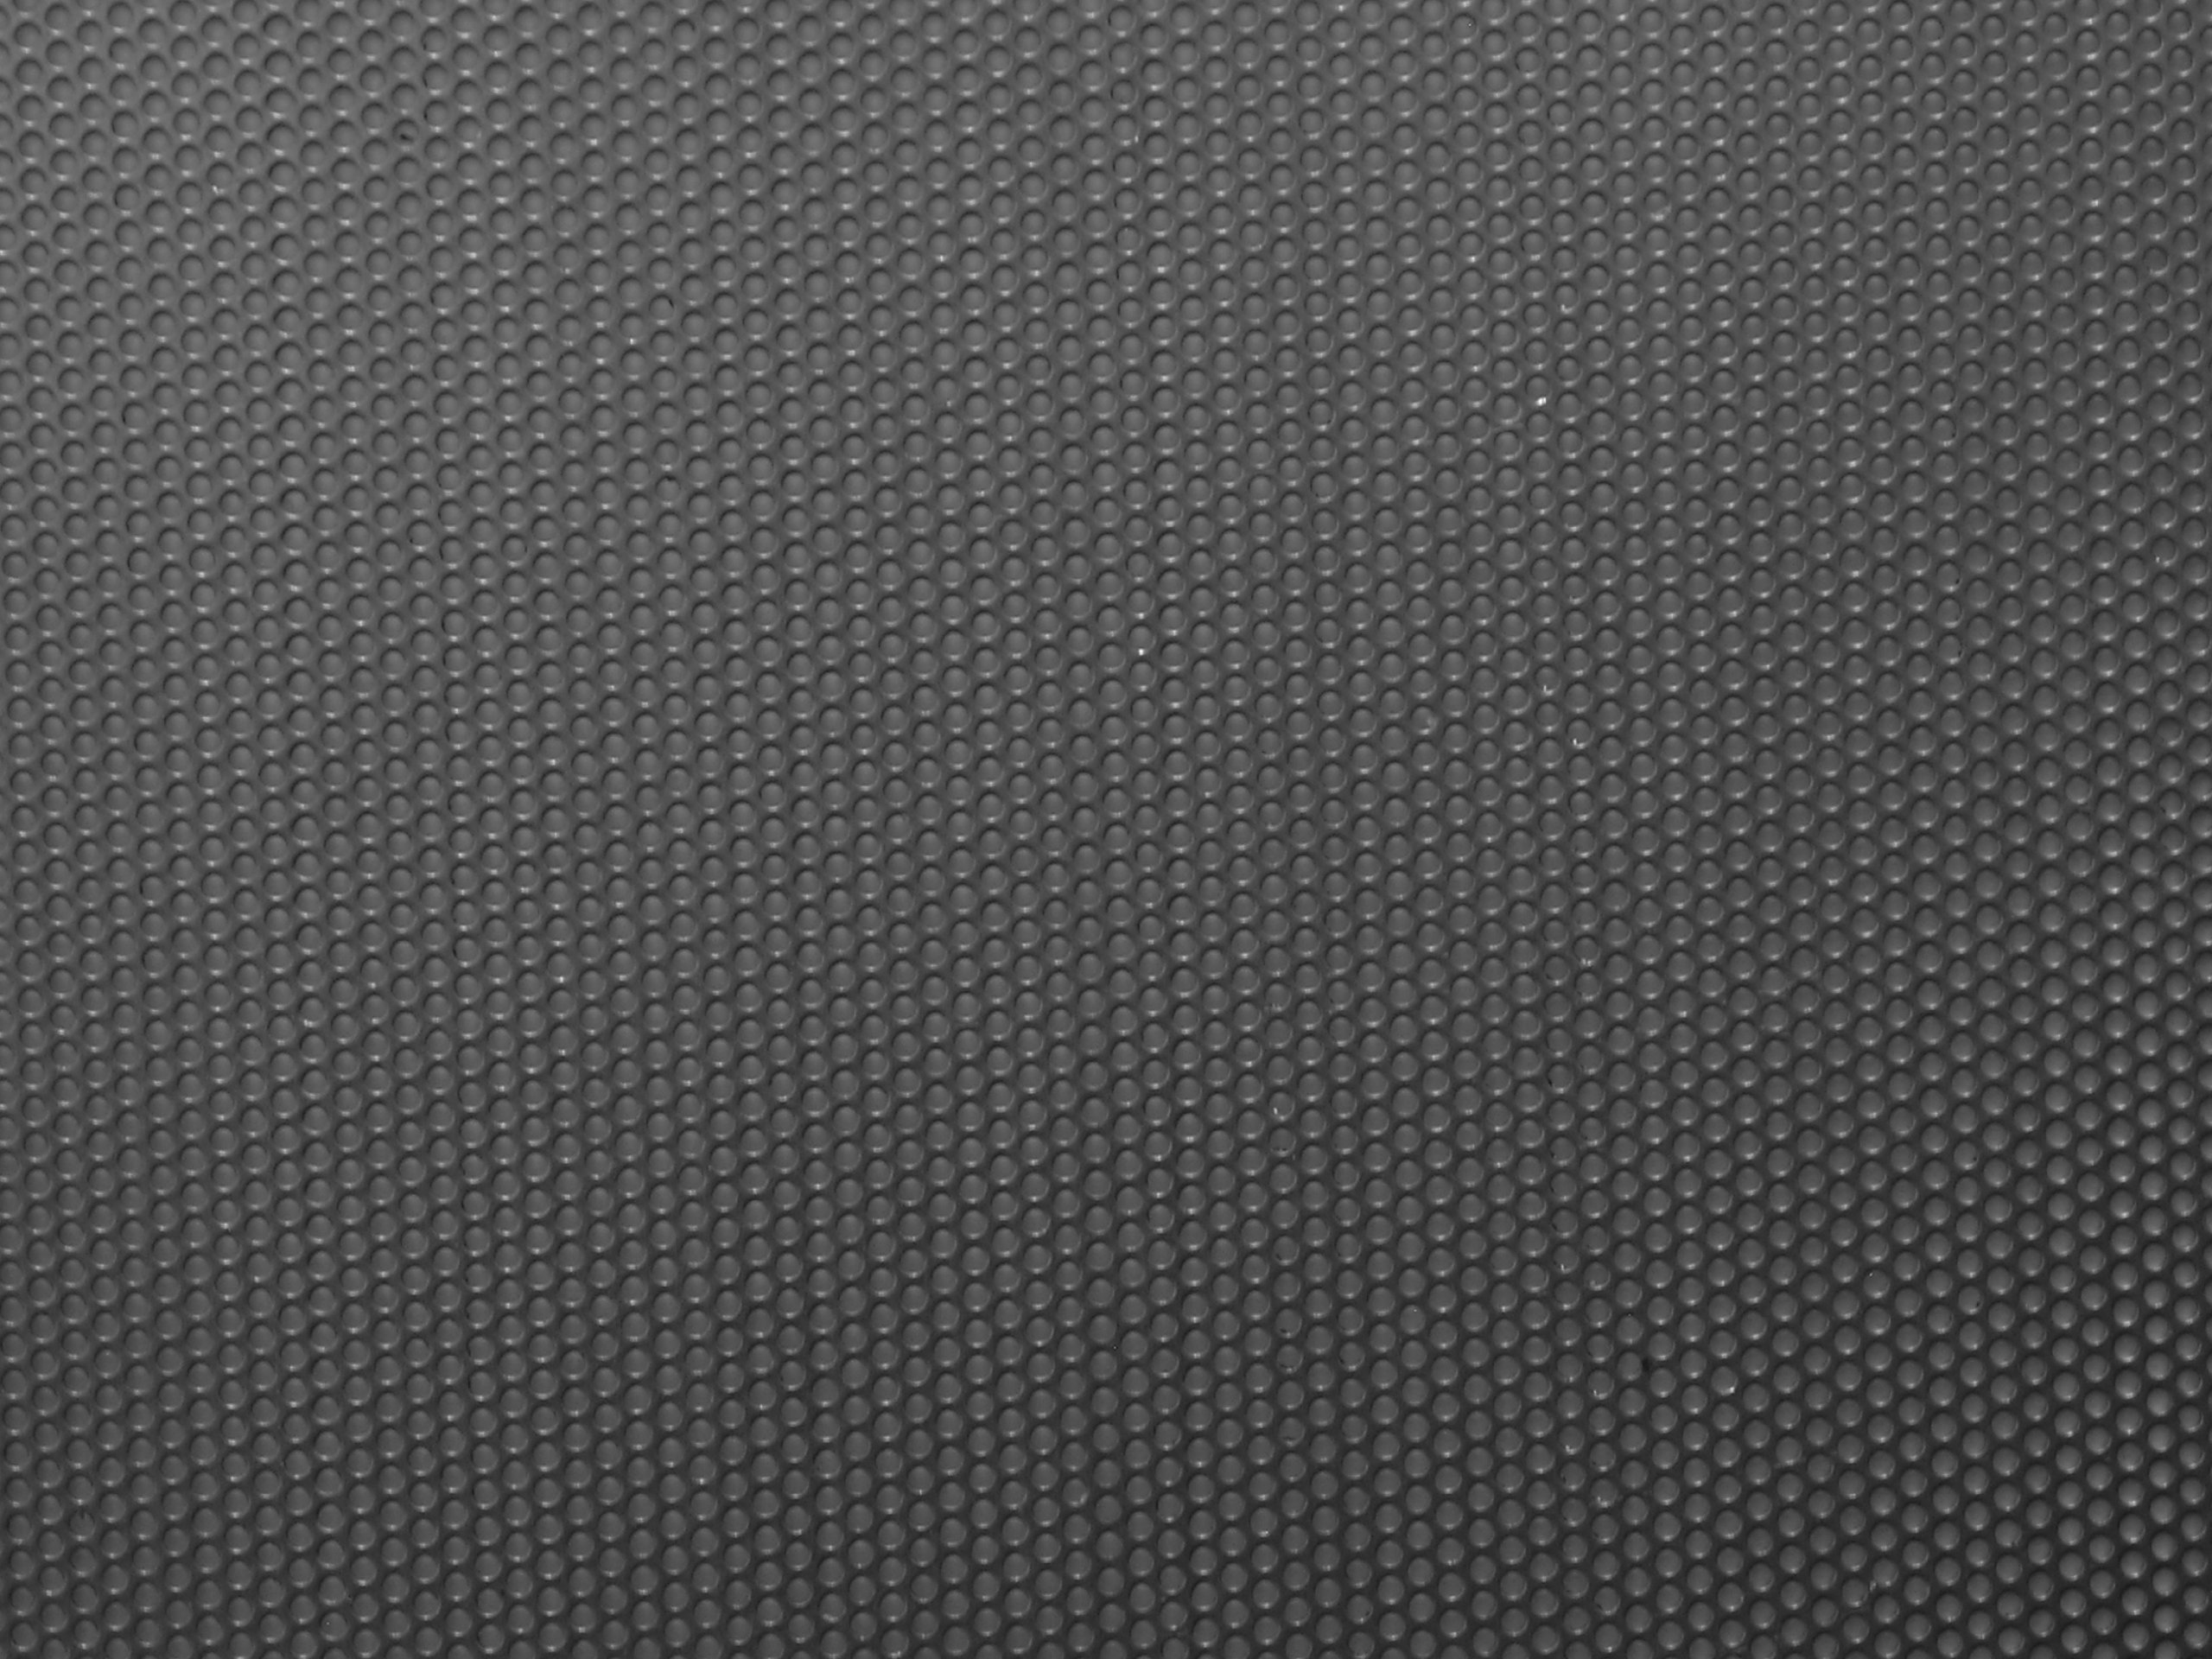 Carbon Steel Perforated Sheet, Unpolished (Mill) Finish, Staggered Holes, 0.0355'' Thickness, 20 Gauge, 36'' Width, 40'' Length, 0.1875'' Center to Center